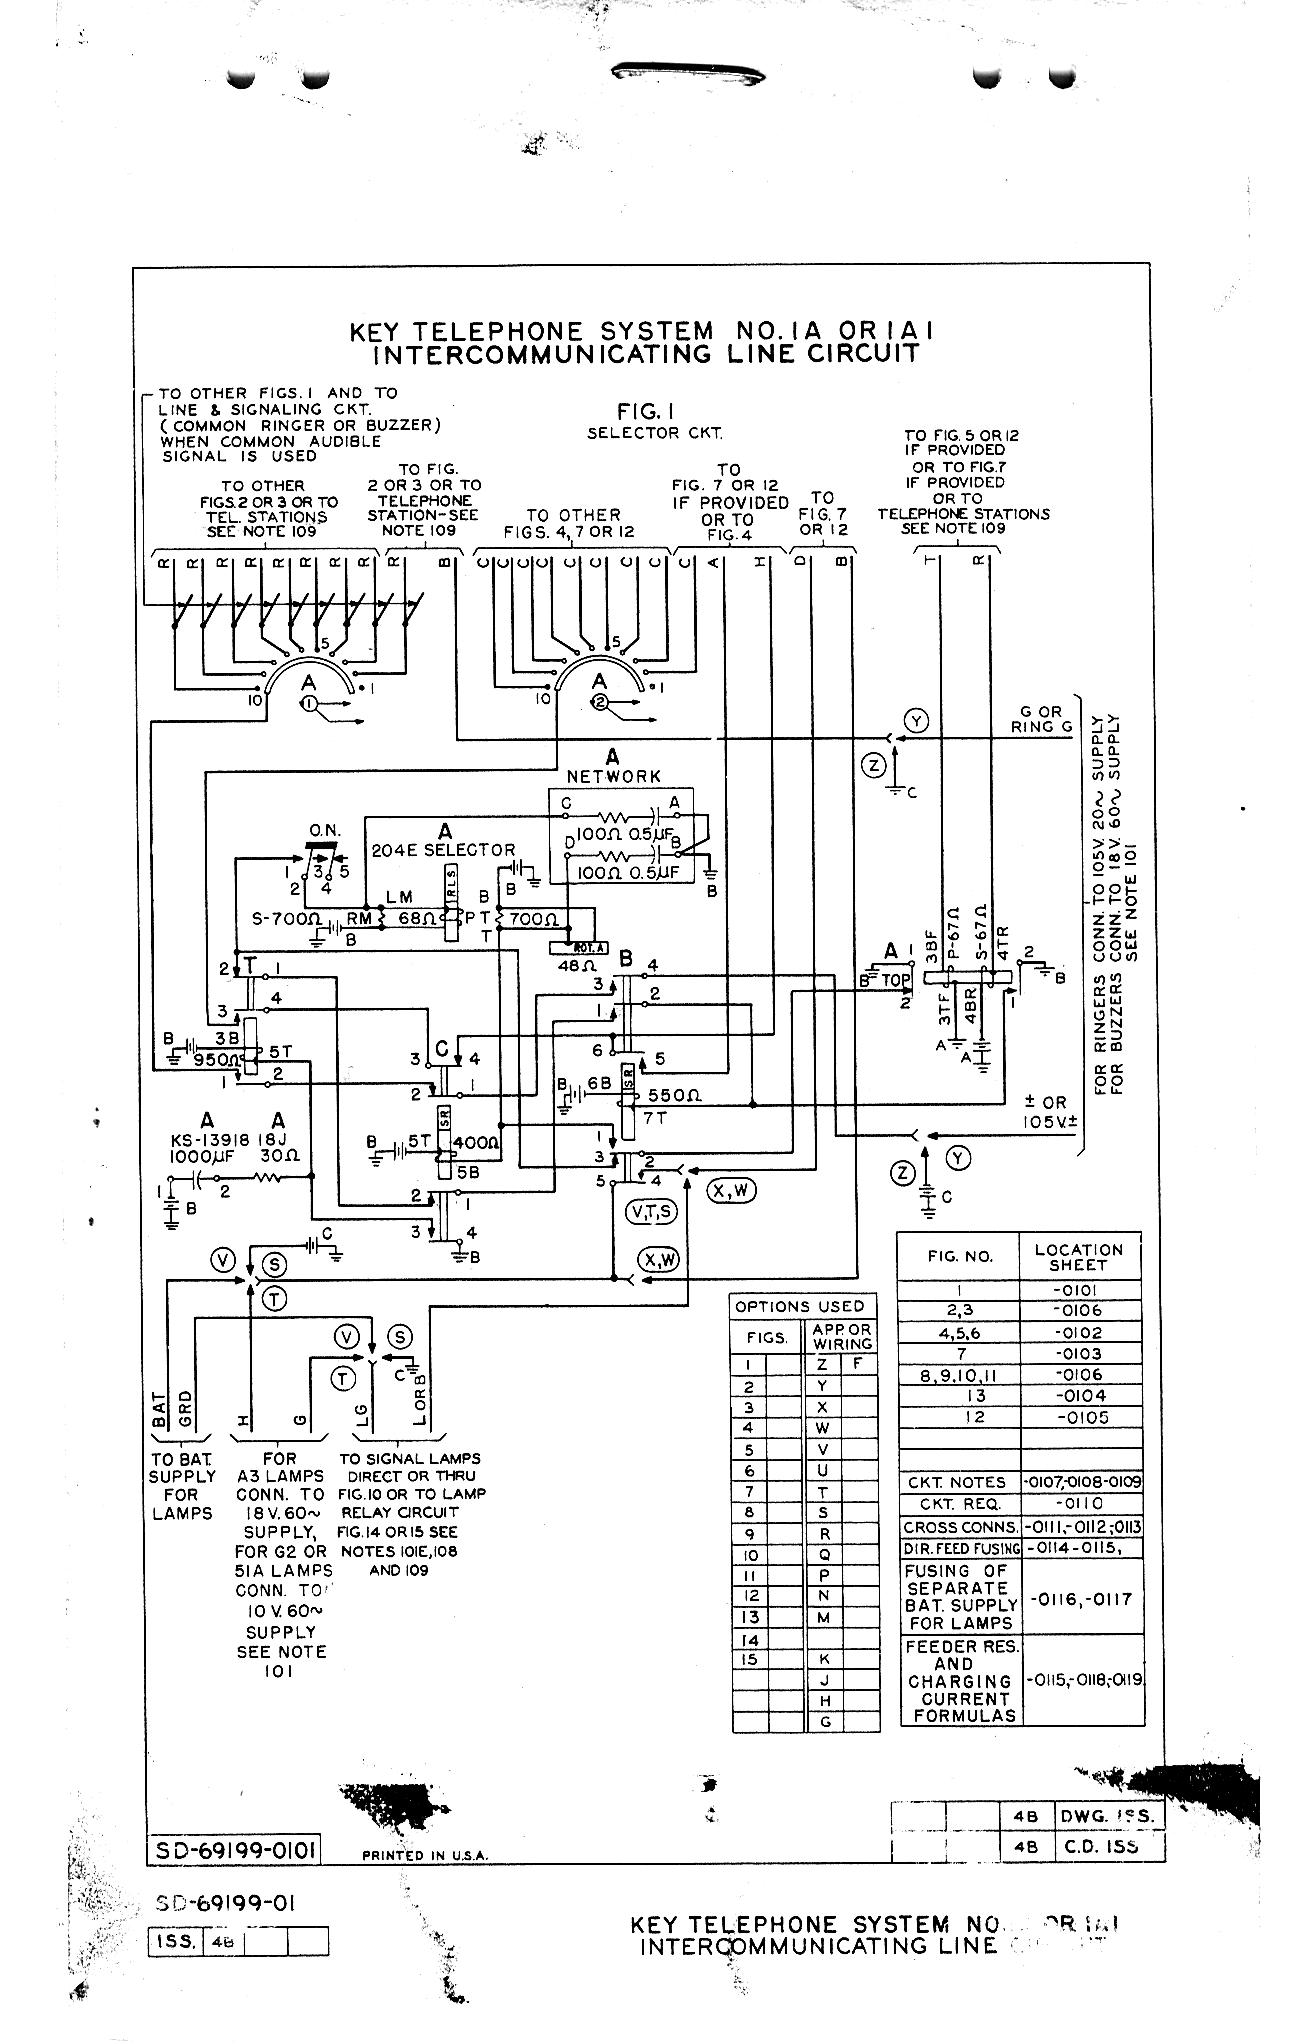 ktu_1a 1a1_intercom_fig1 telephone technical references western electric 554 wiring diagram at gsmx.co